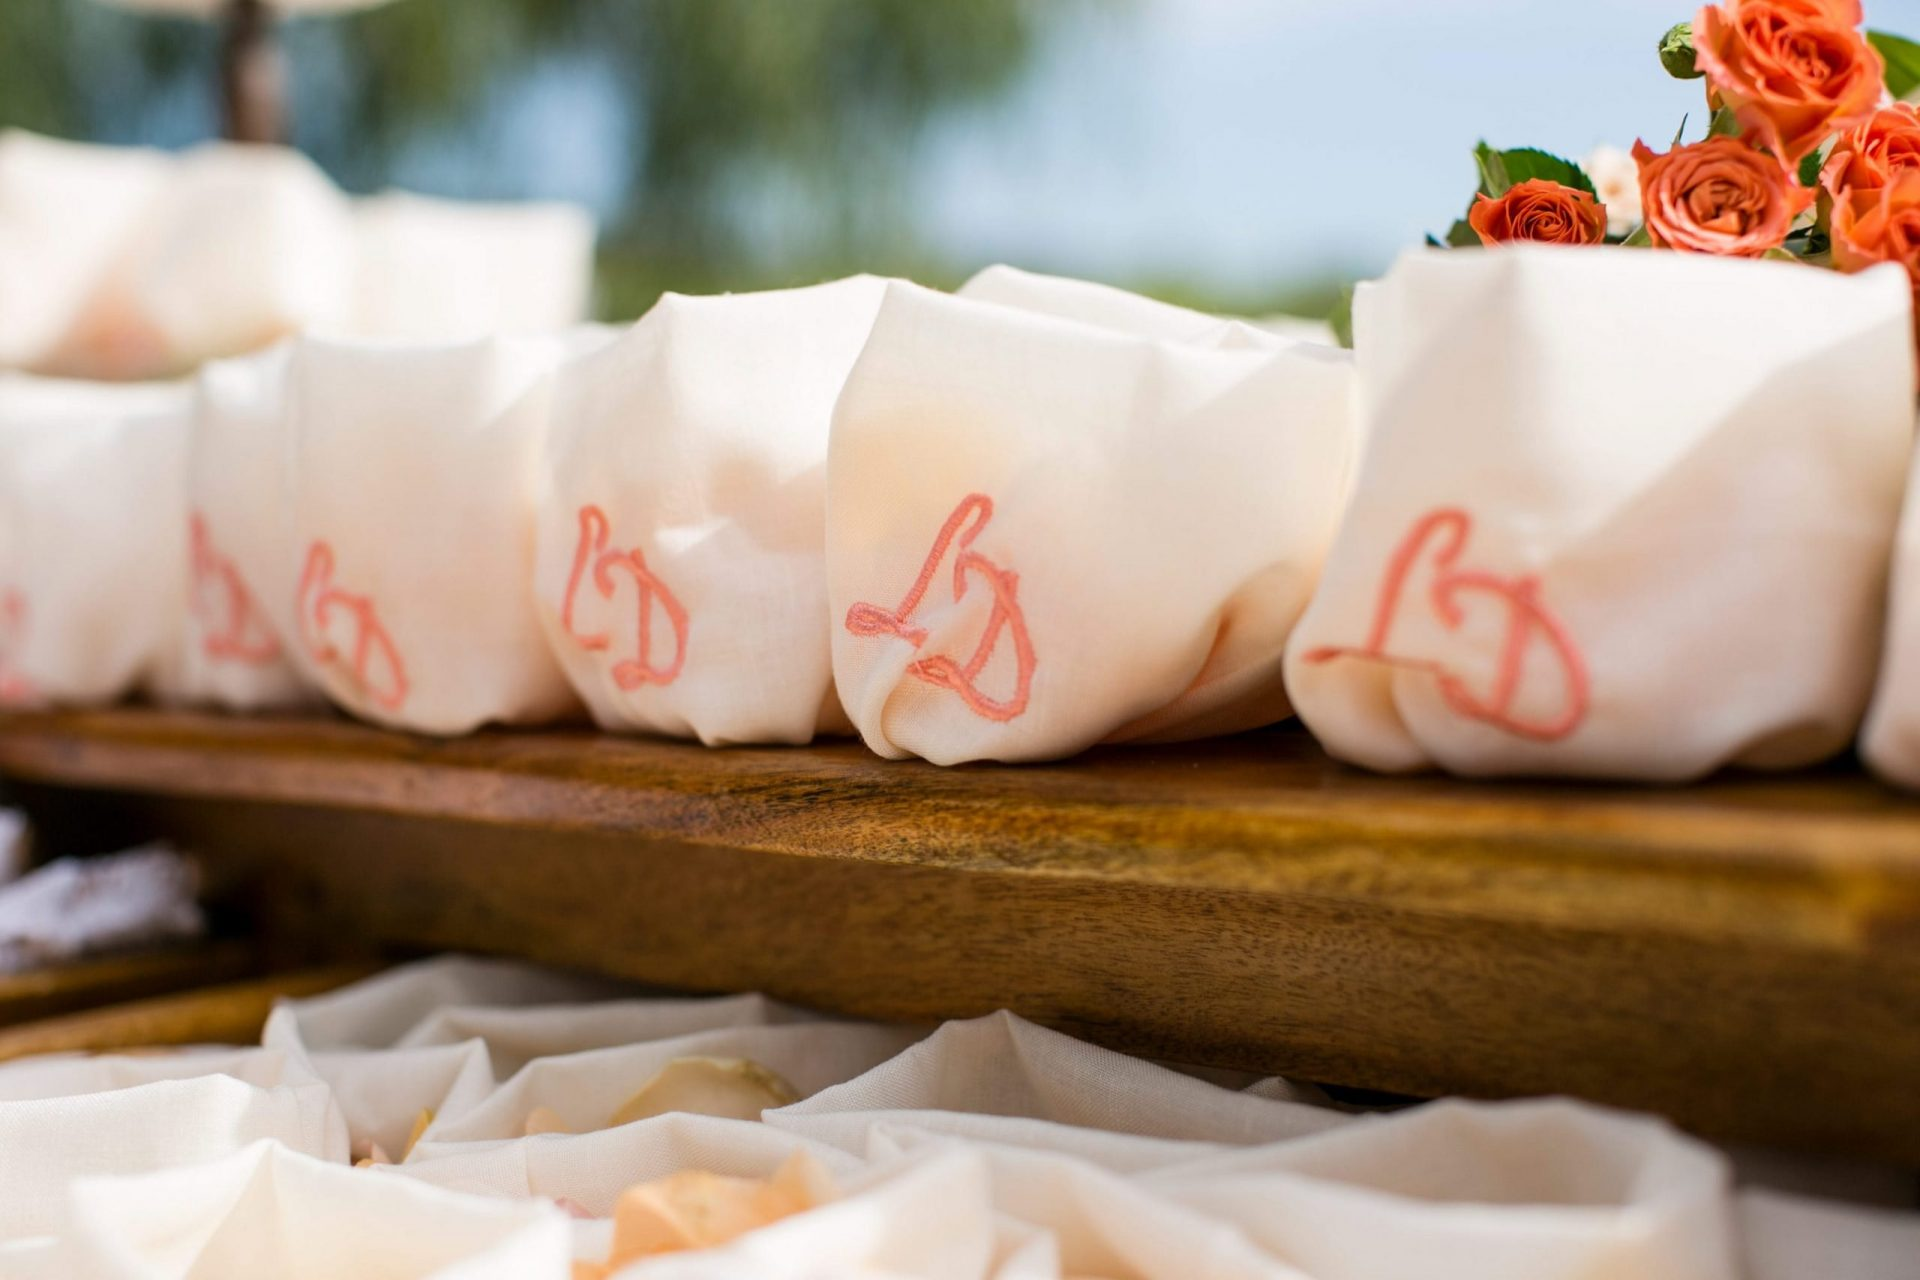 Lisa and Daniel, luxury wedding in Cala di Volpe, embroidered initials on petals sachet